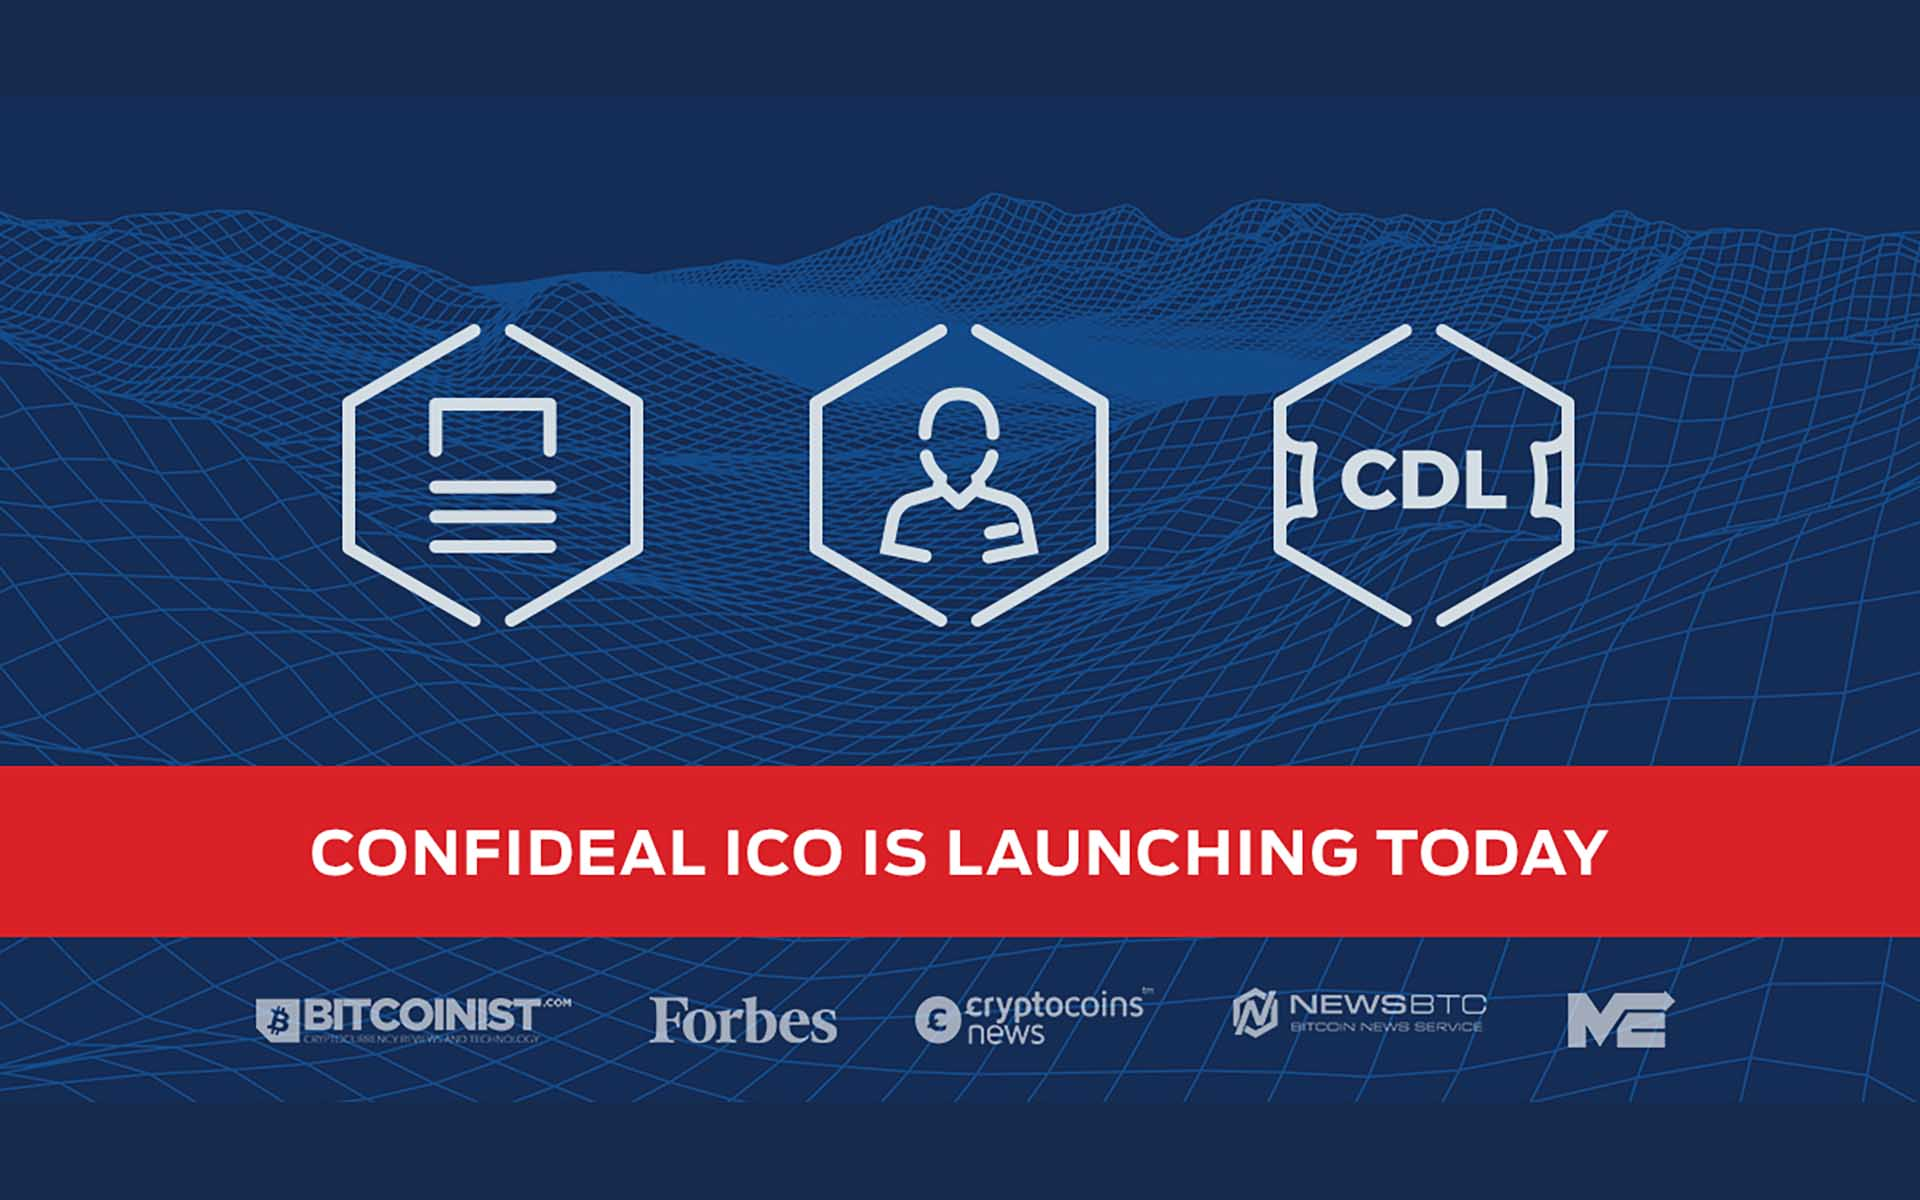 The Confideal ICO Has Started - Time to Contribute to Success!